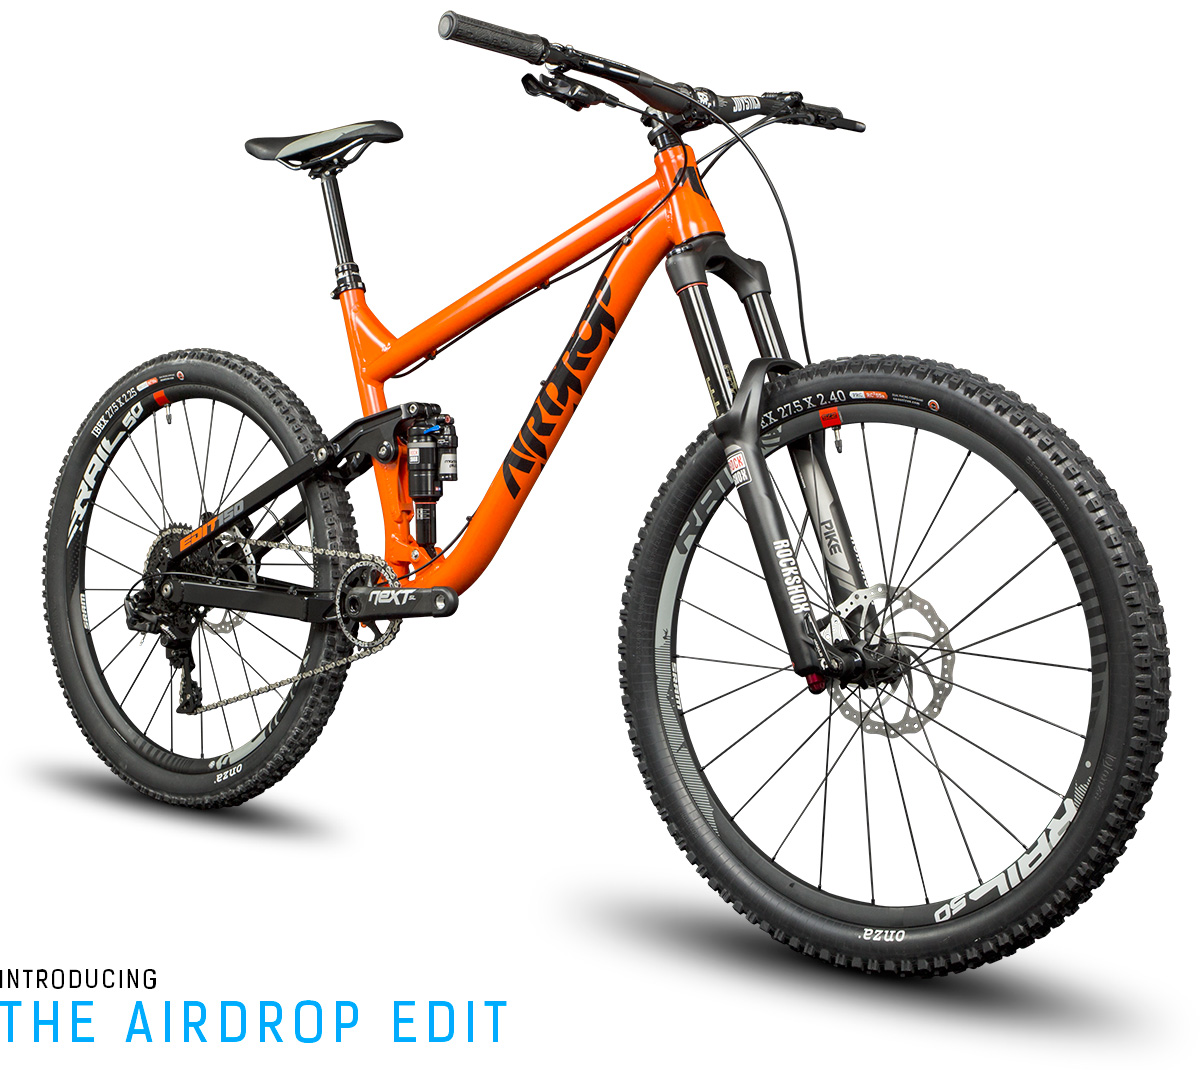 New Bike Airdrop Edit Enduro Bike Arm Crank